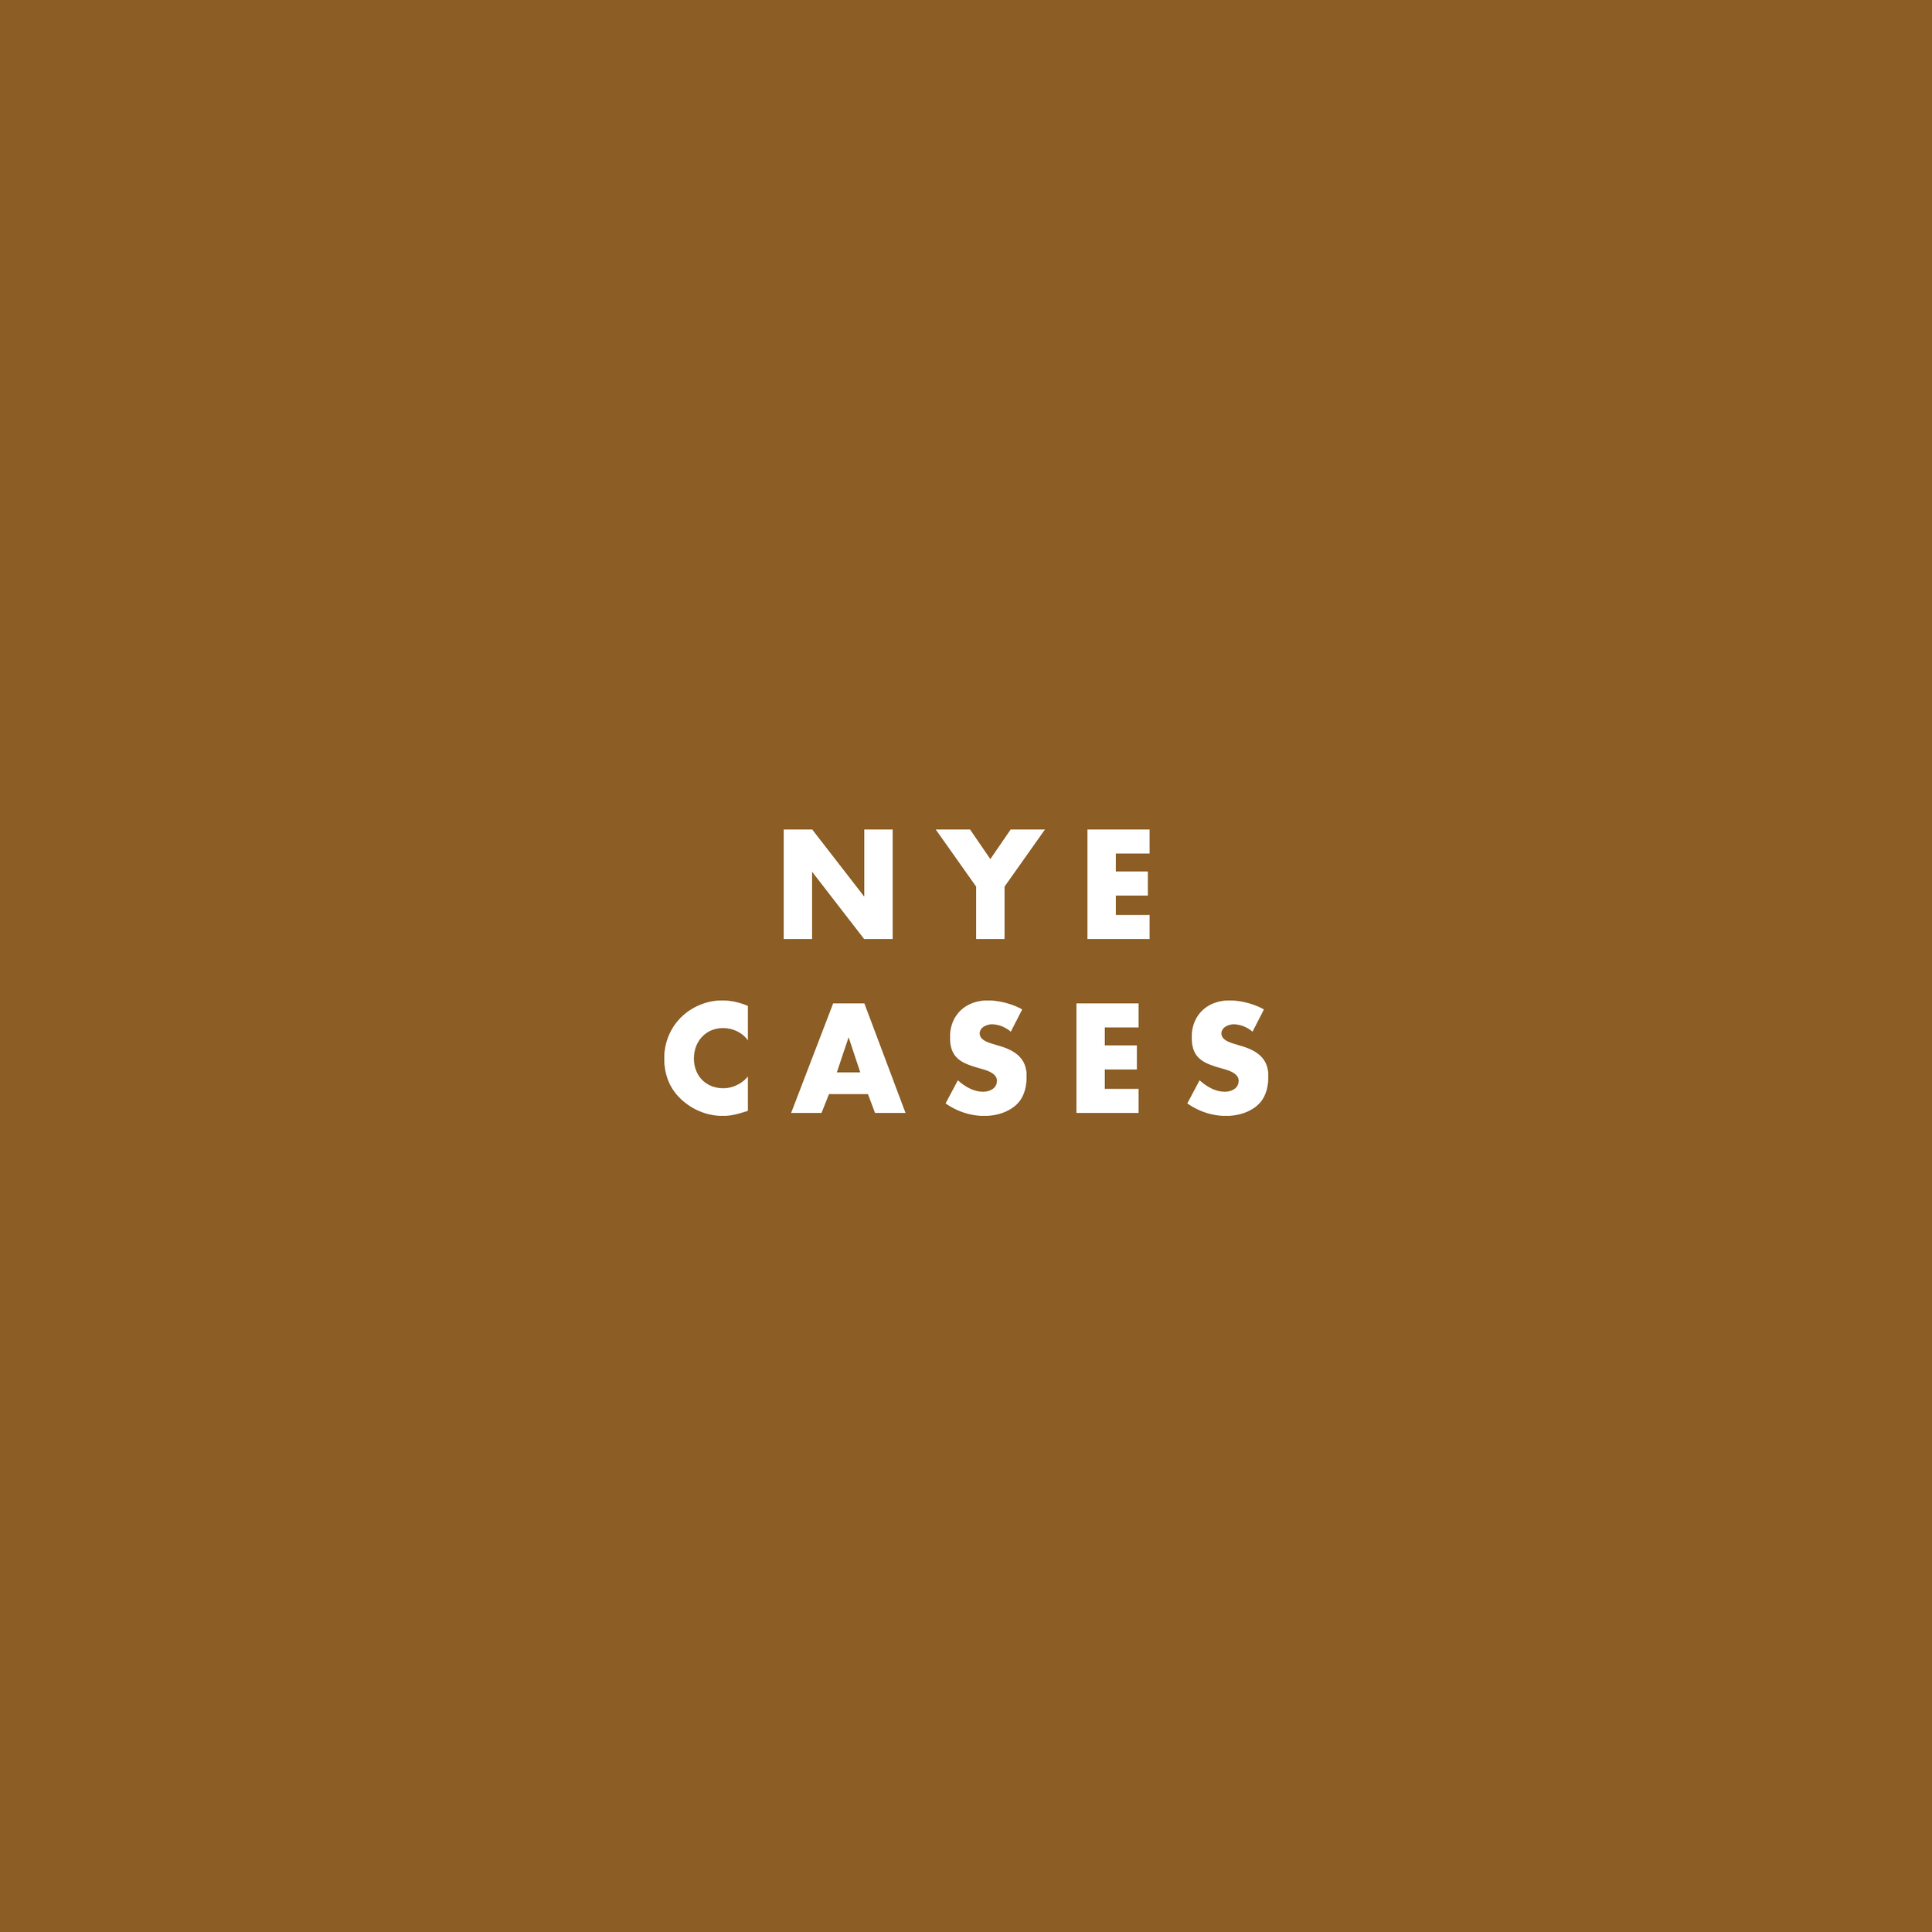 nyecases.png